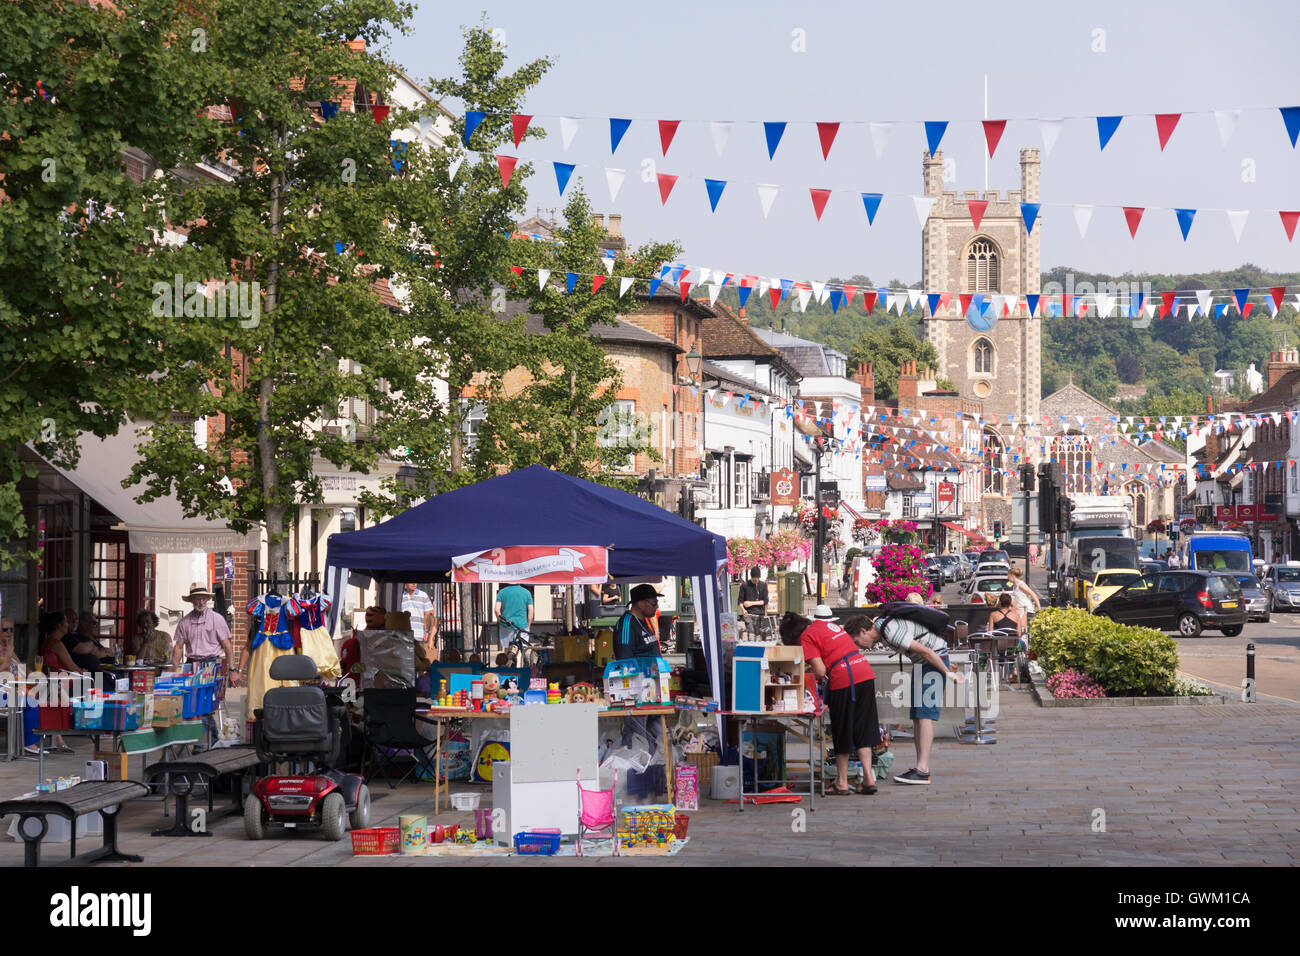 A fundraising stand for Leukemia in Henley-on-Thames, England - Stock Image